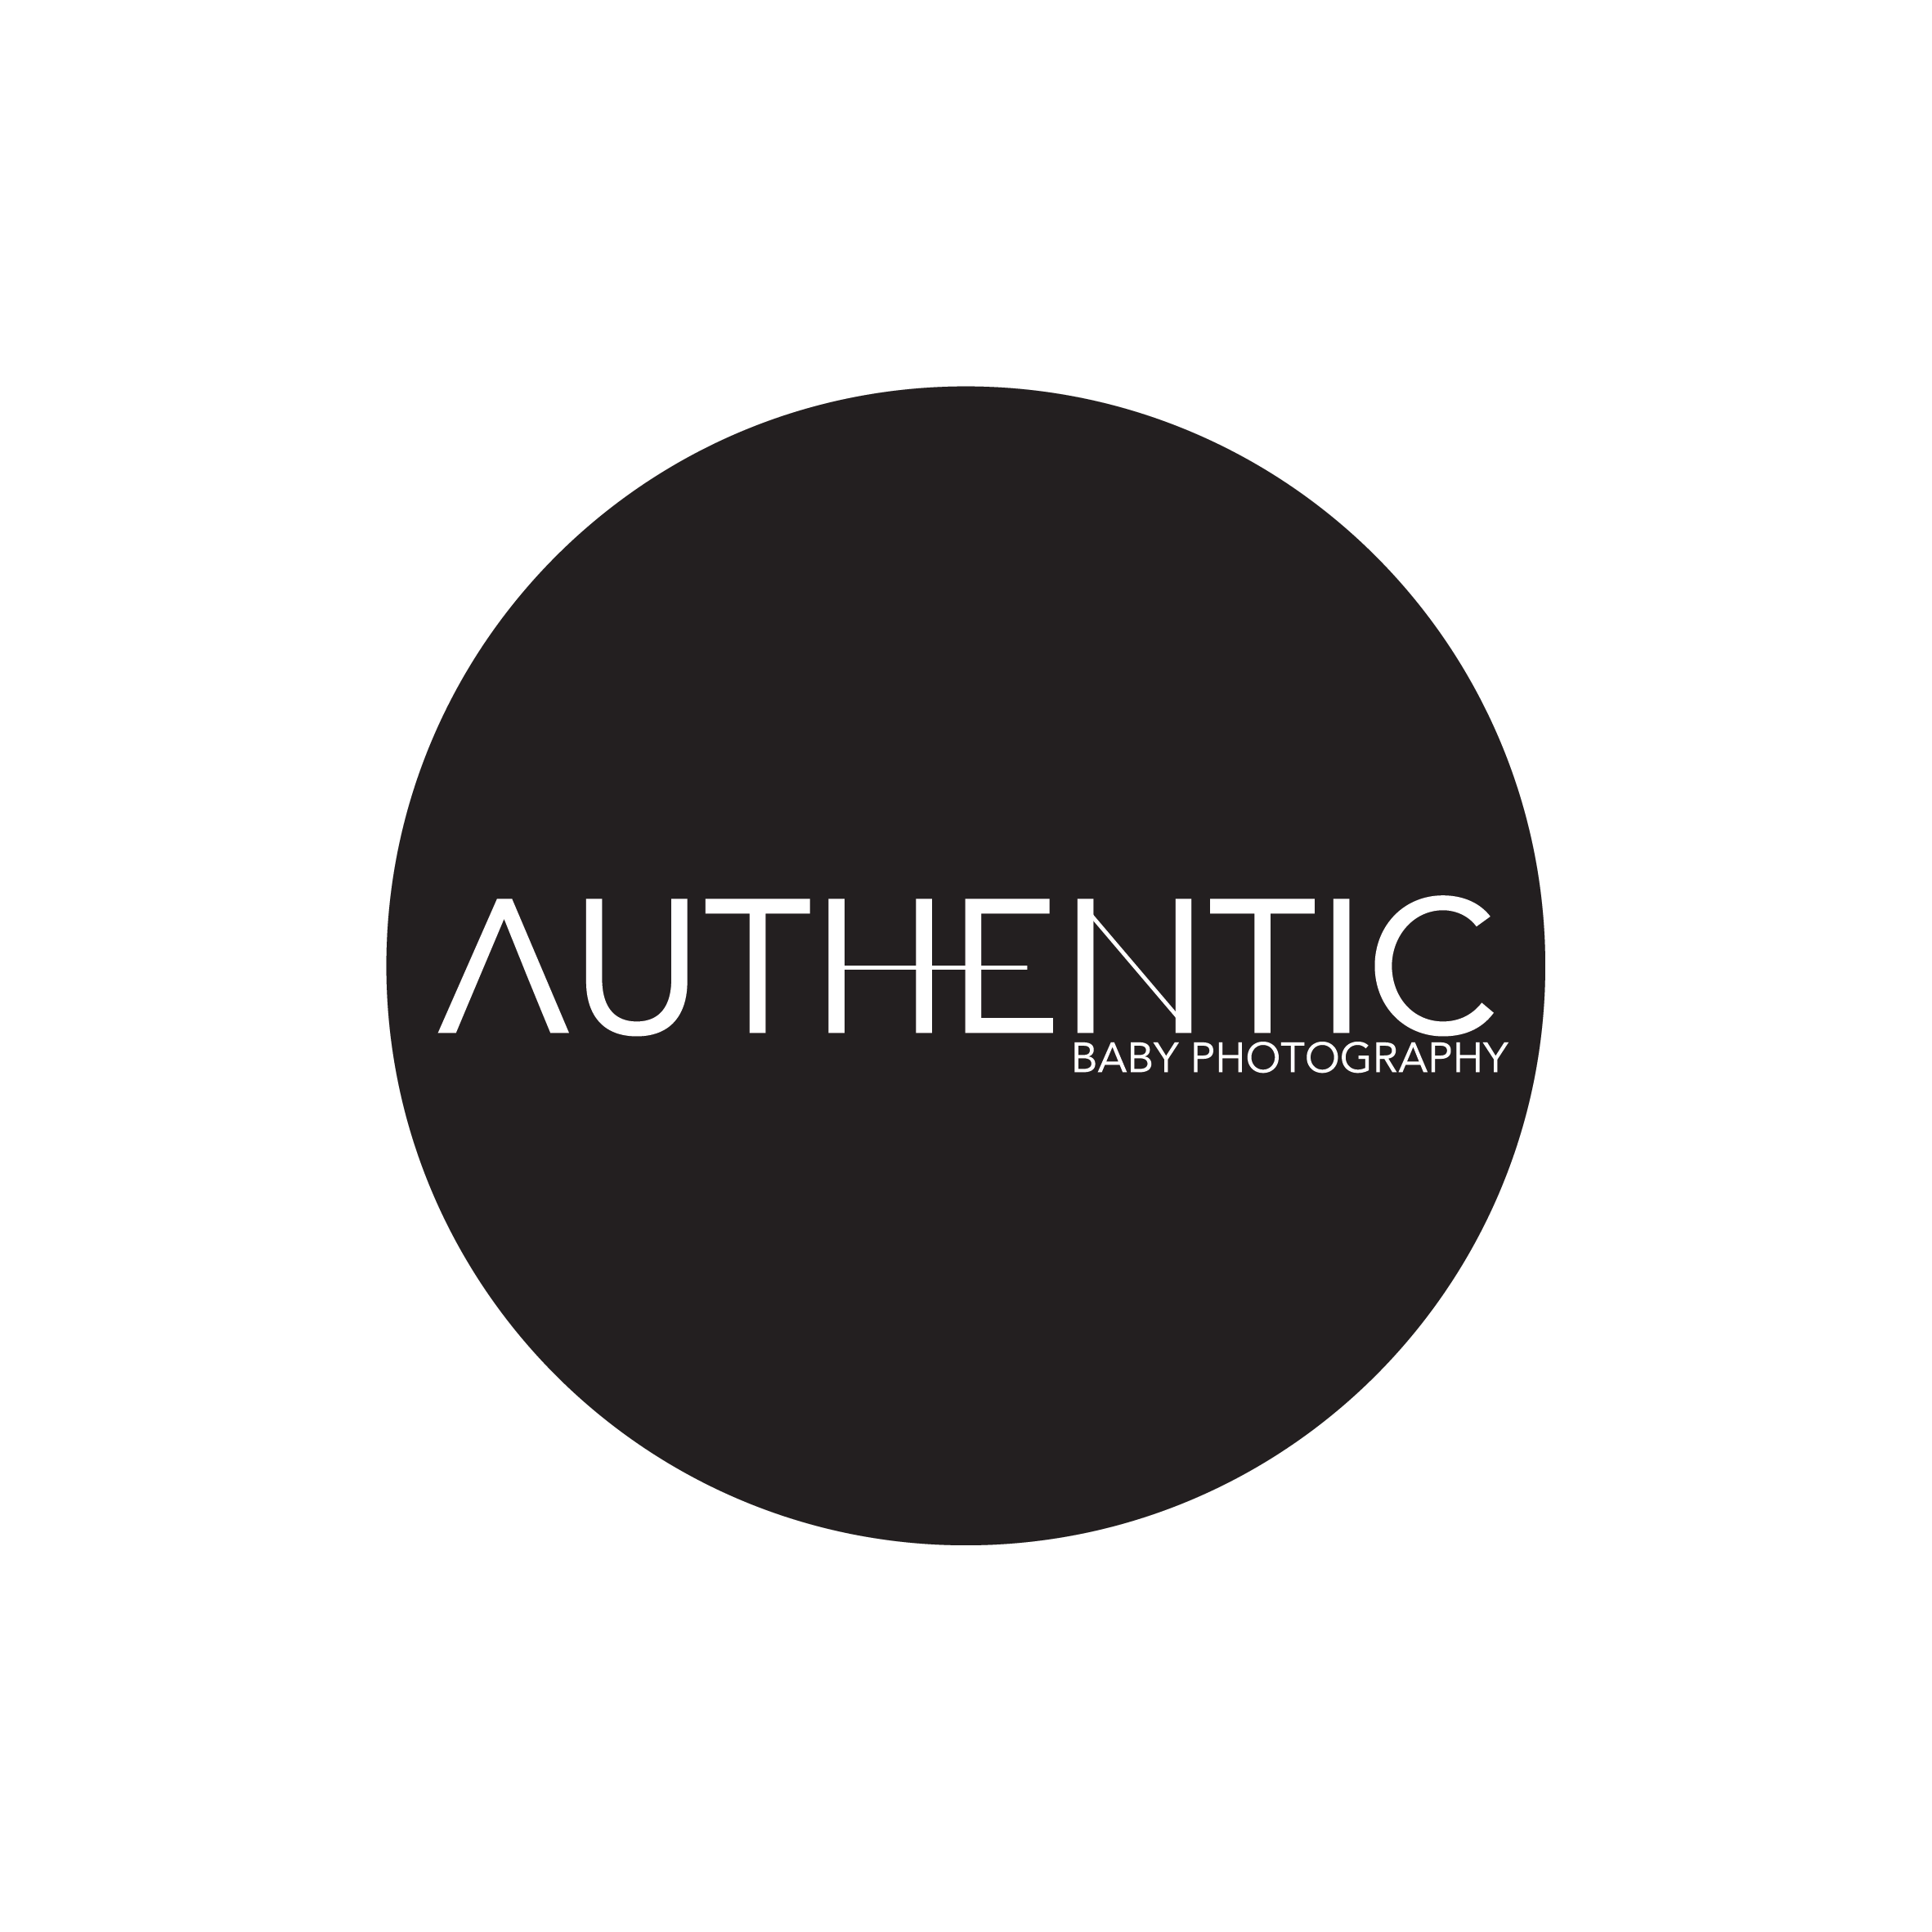 Authentic Baby Photography's logo